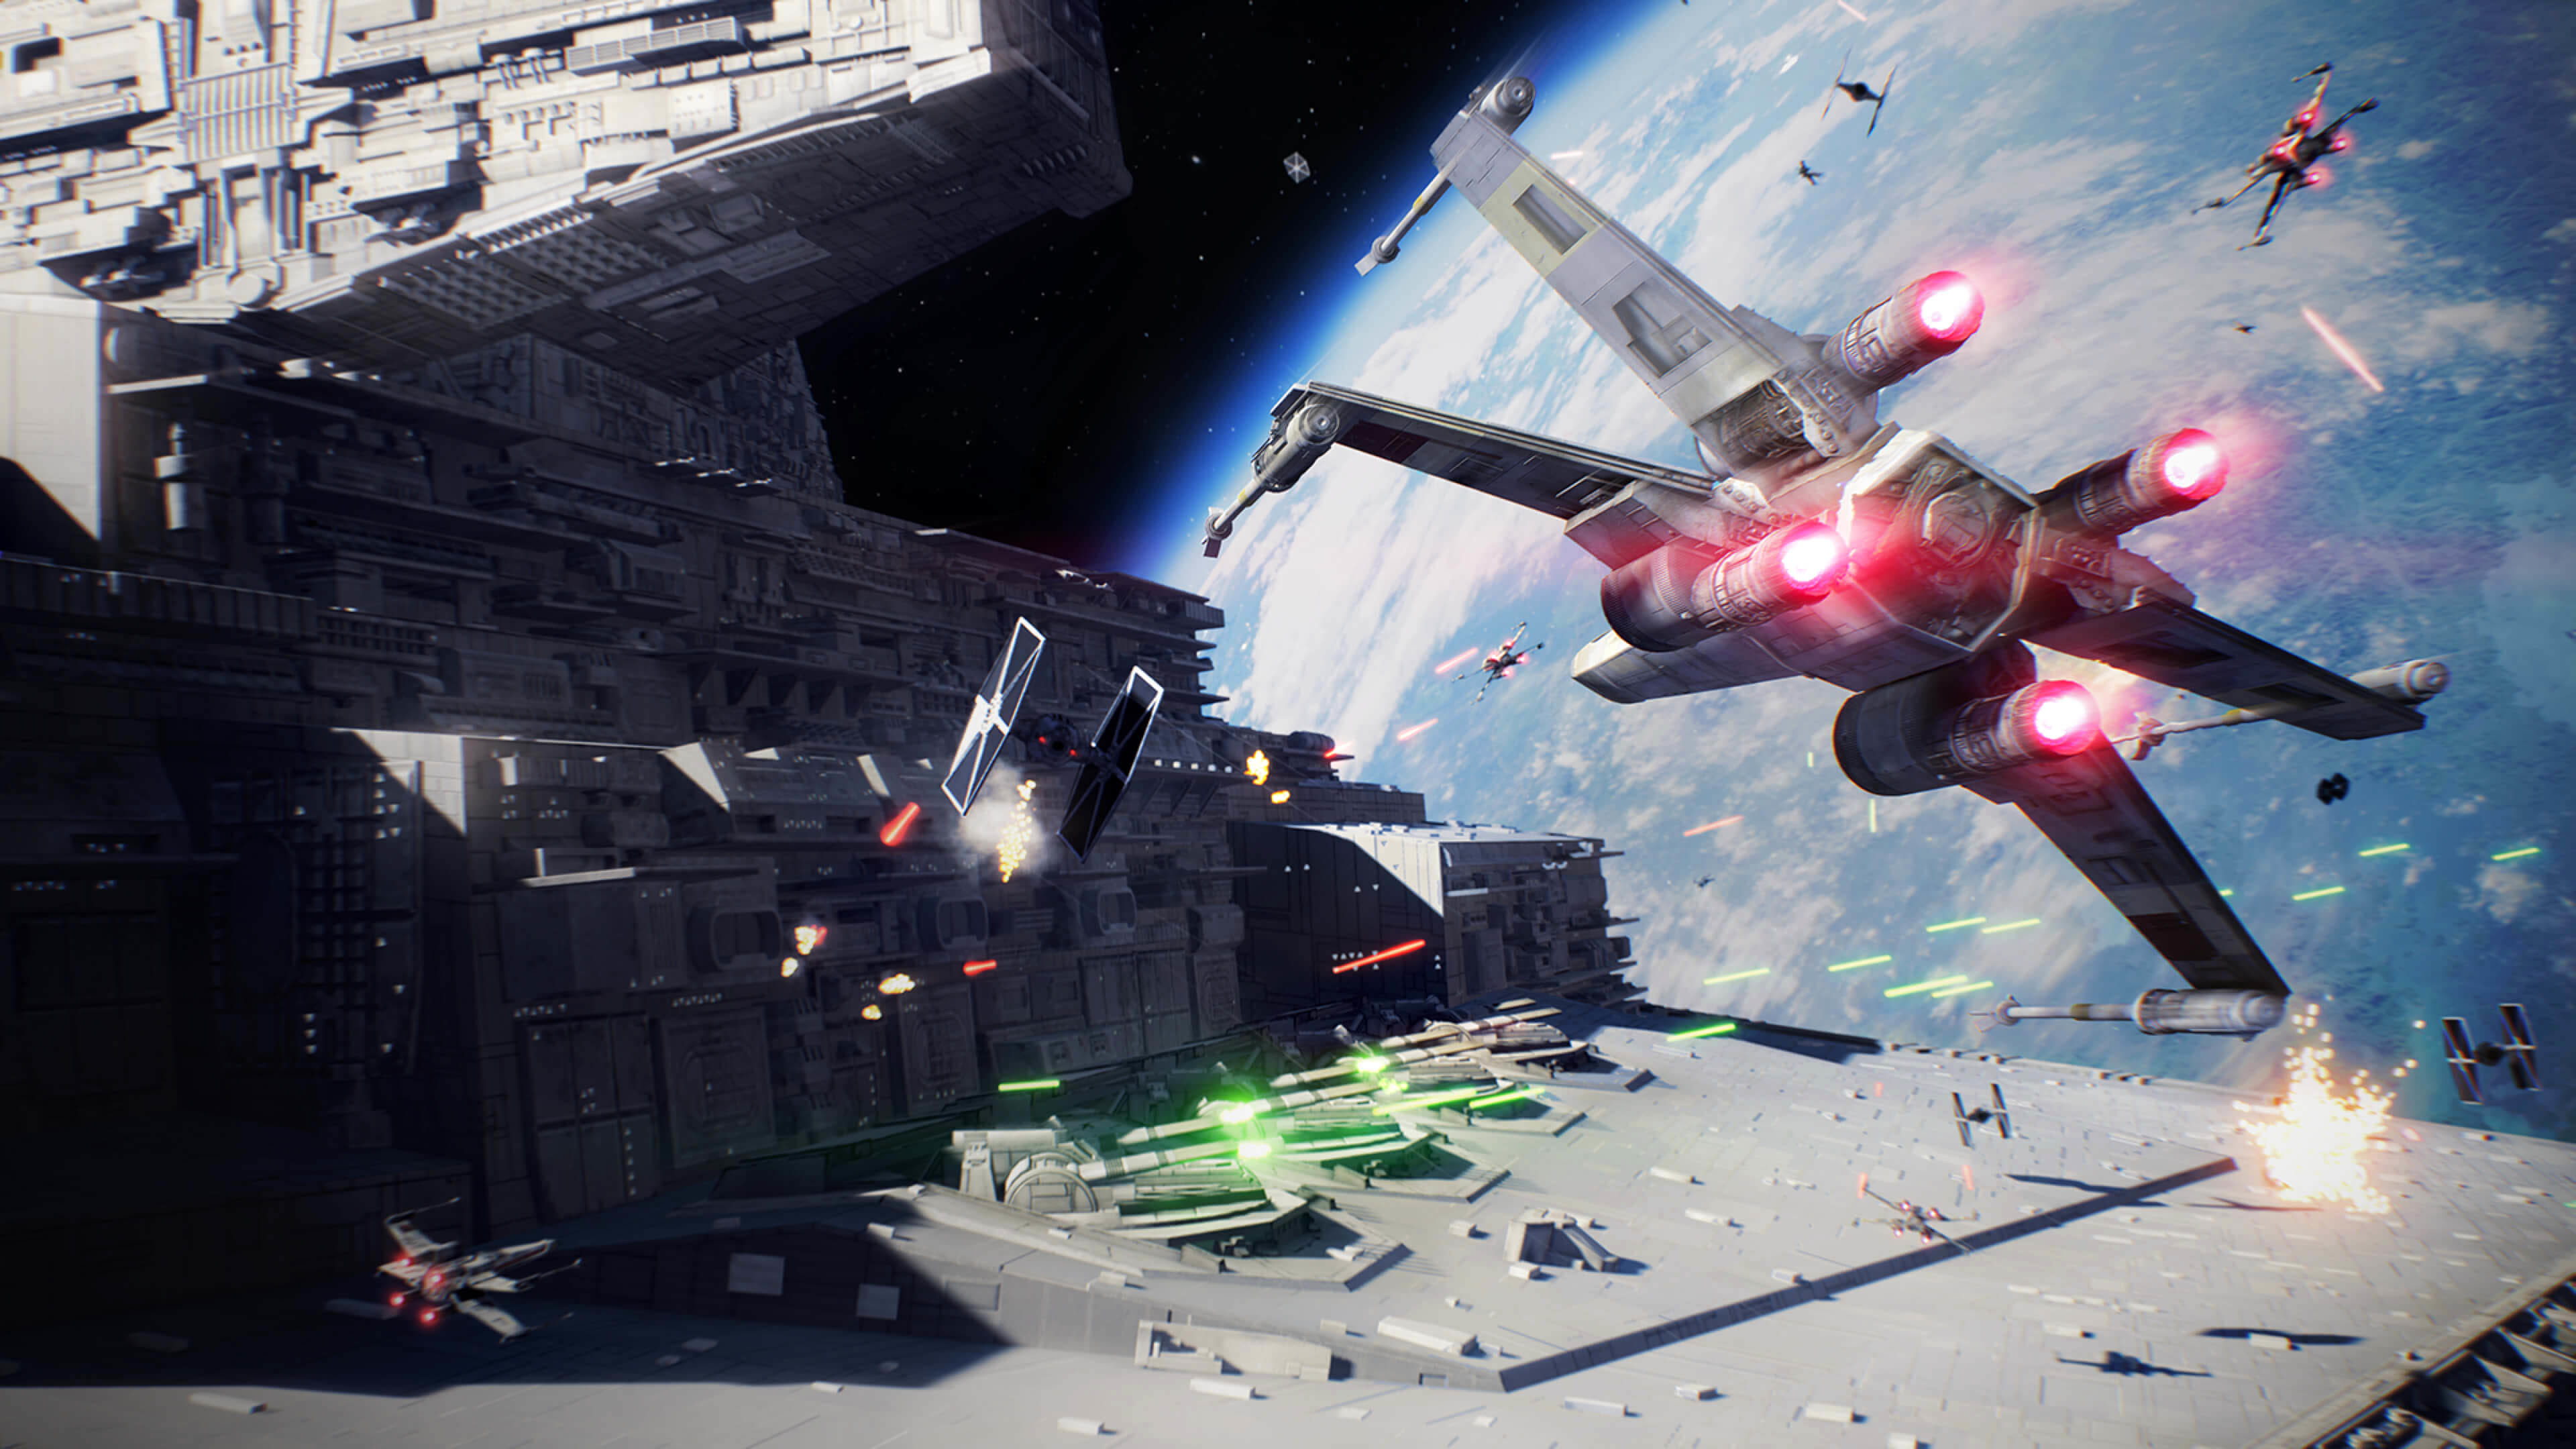 Star Wars Space Battle Wallpaper 61 images 3840x2160